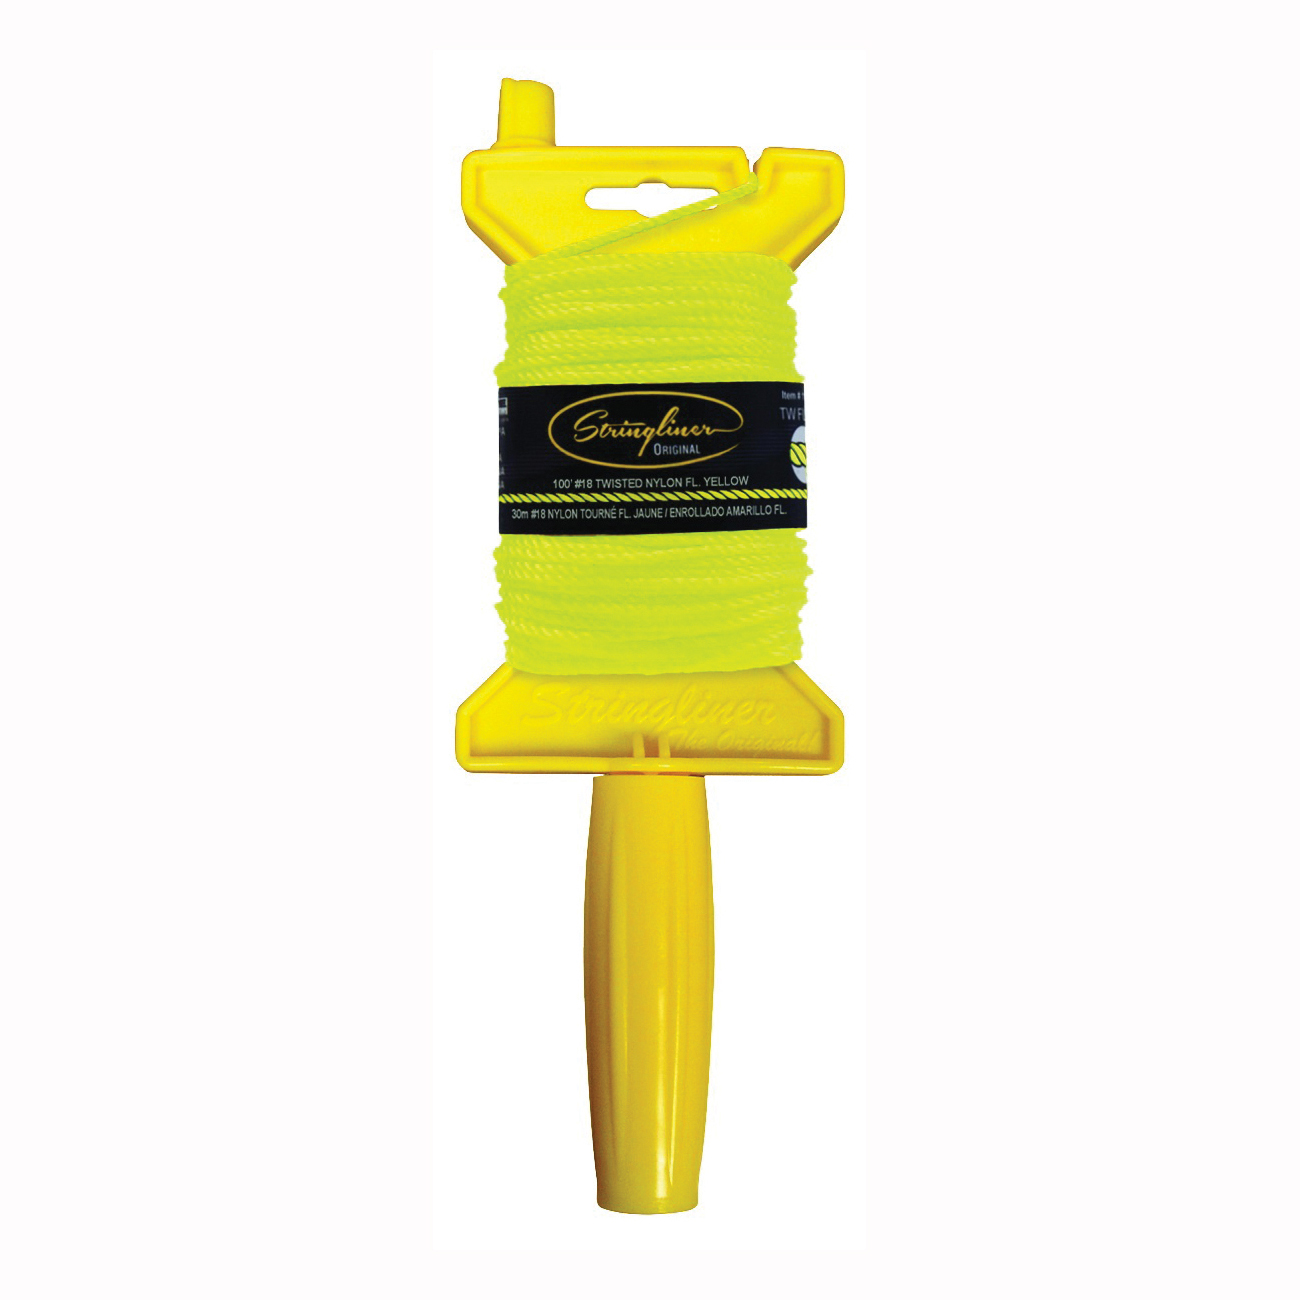 Picture of Stringliner 11112 Line Reel, 100 ft L Line, Fluorescent Yellow Line